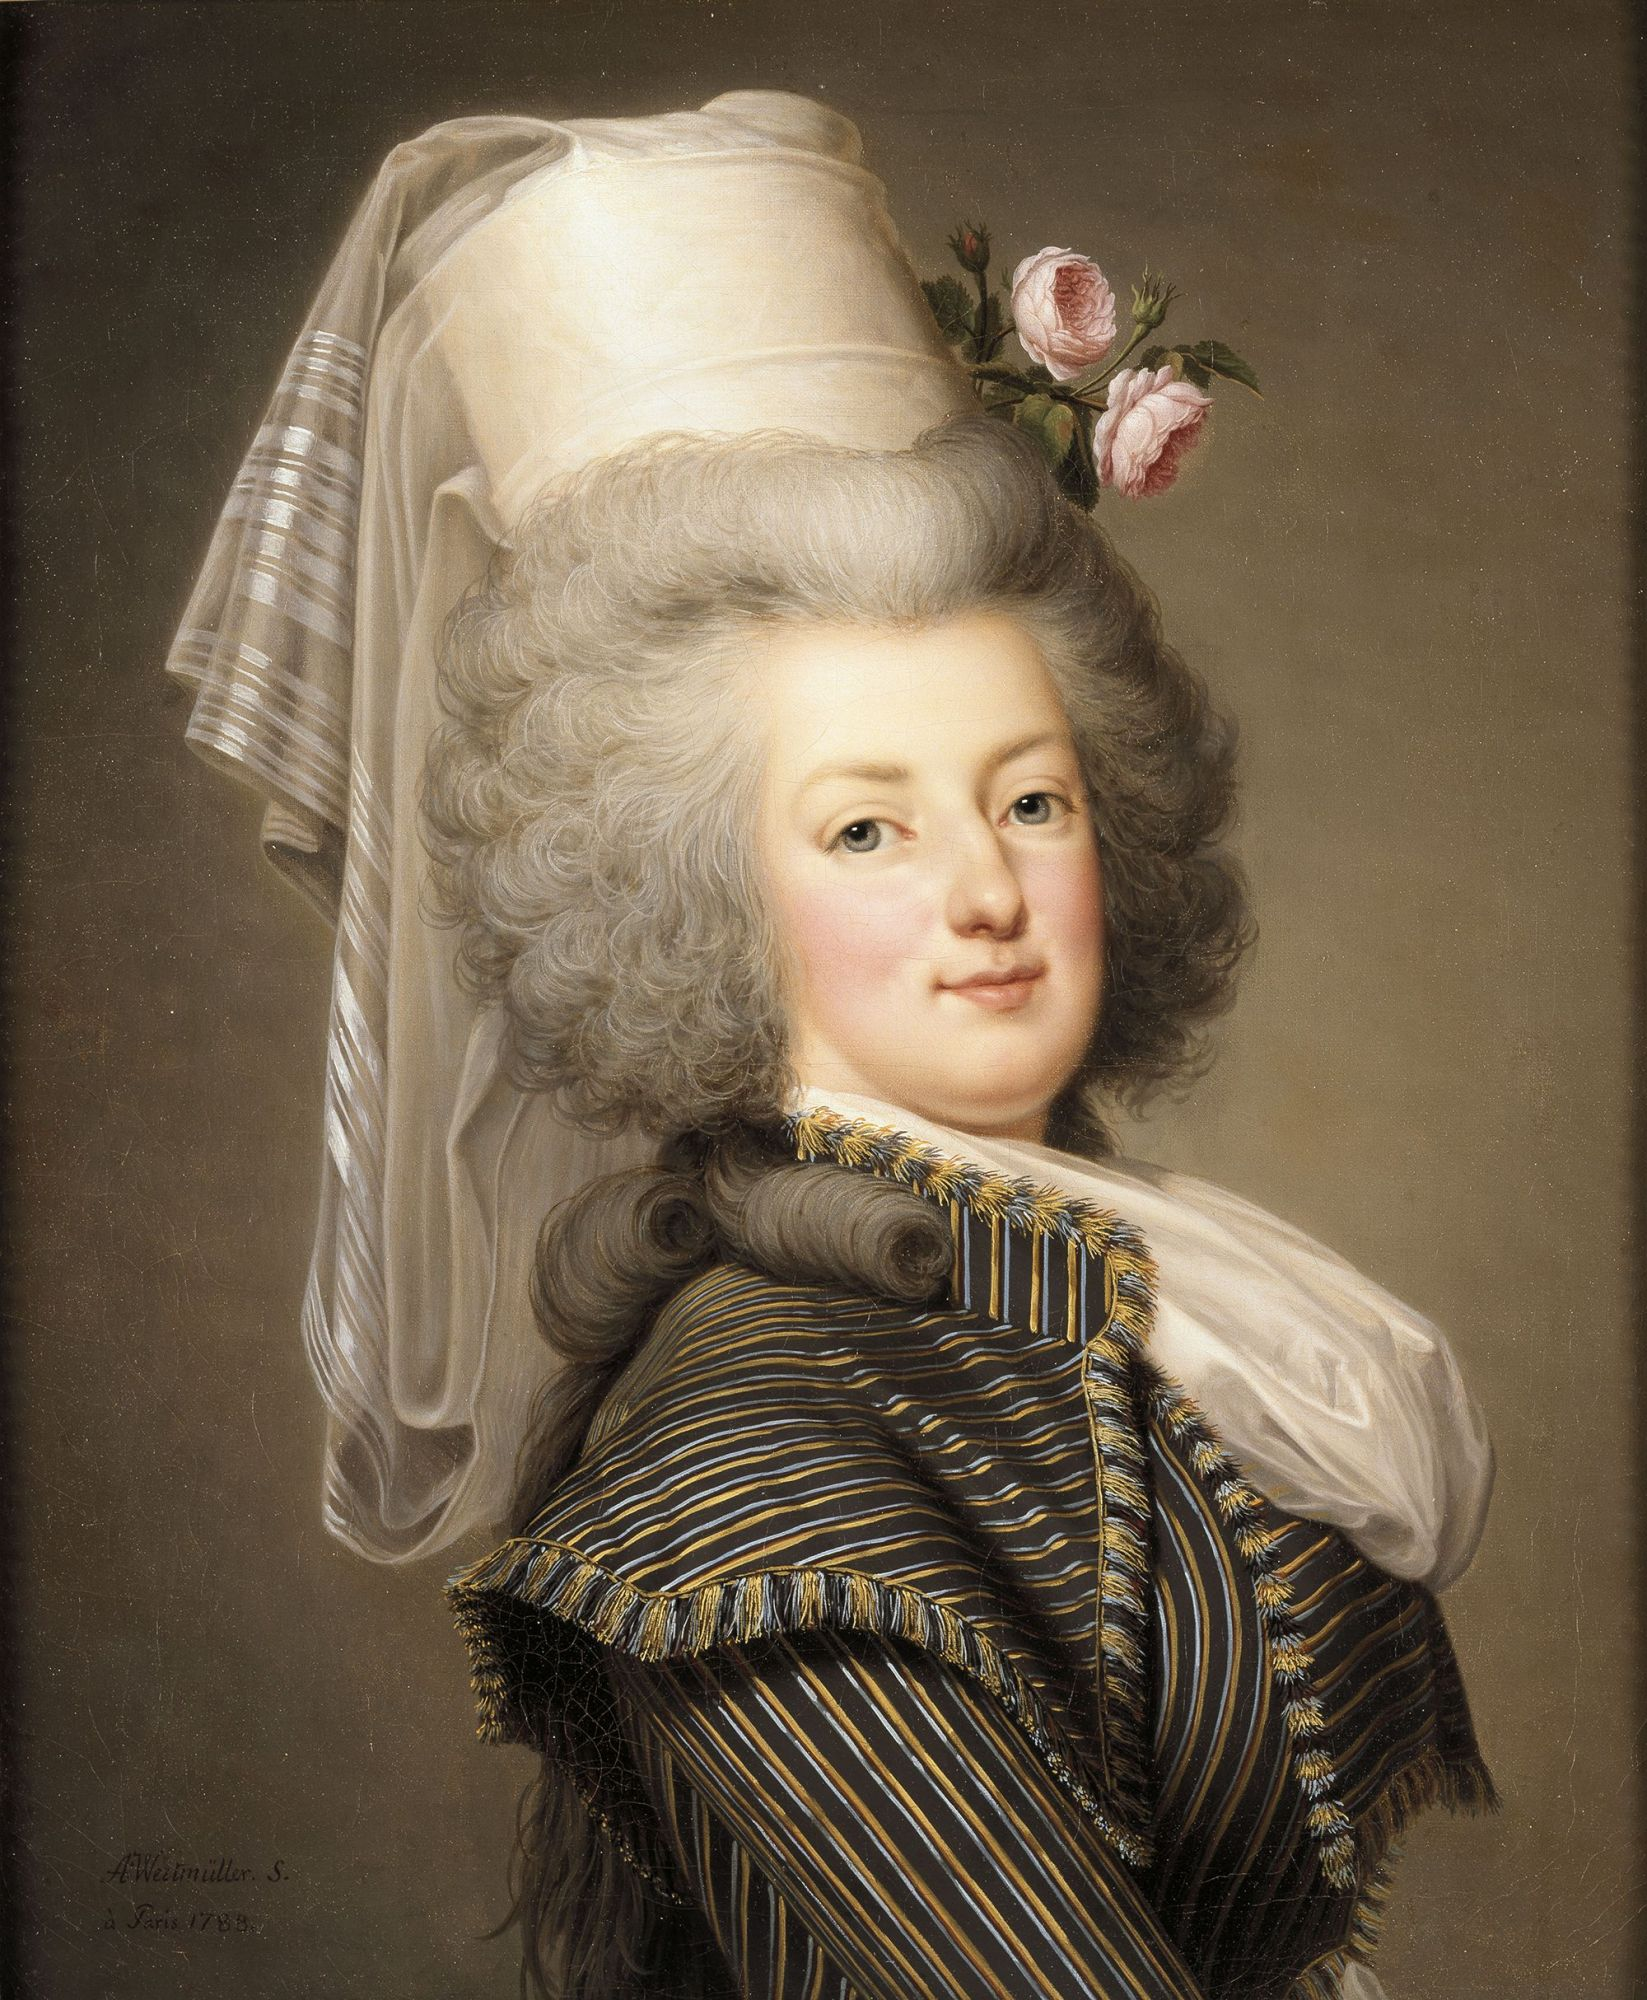 historical essay on the life of marie antoinette Marie antoinette of france history essay print even if she is prominent for her historical the precision of the analysis of marie antoinette's life.